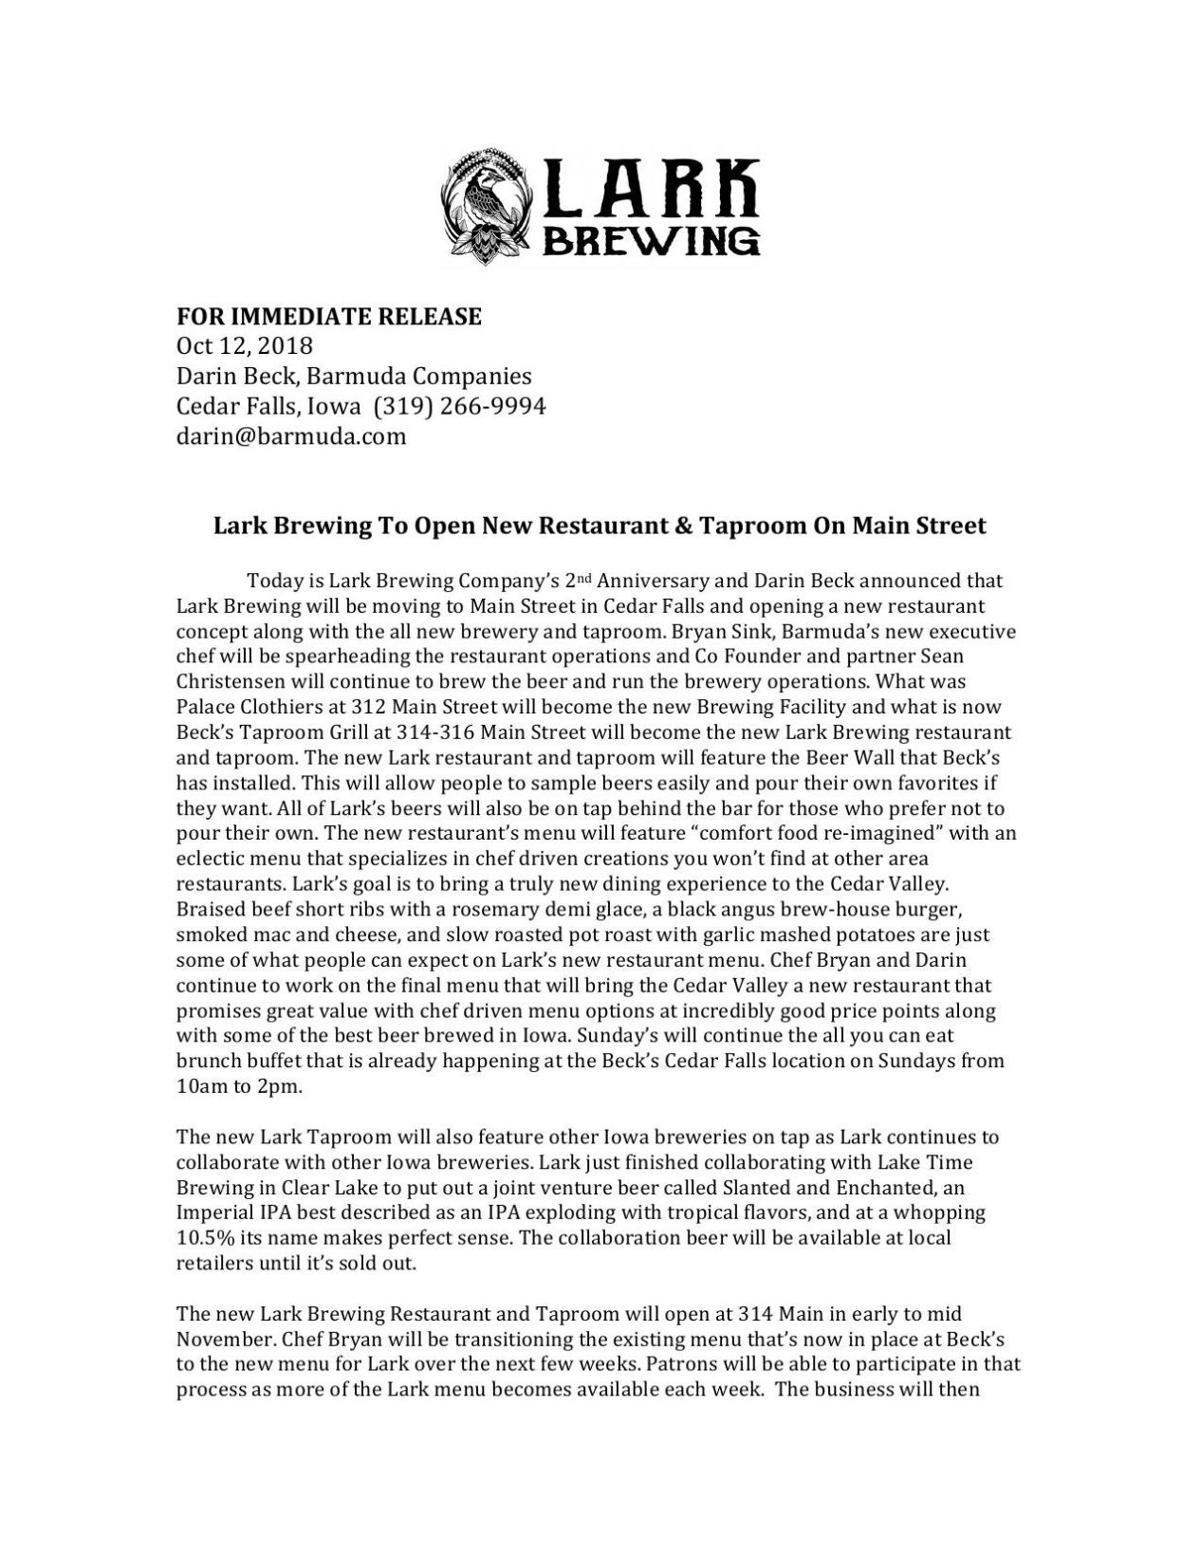 Lark Brewing press release from Darin Beck